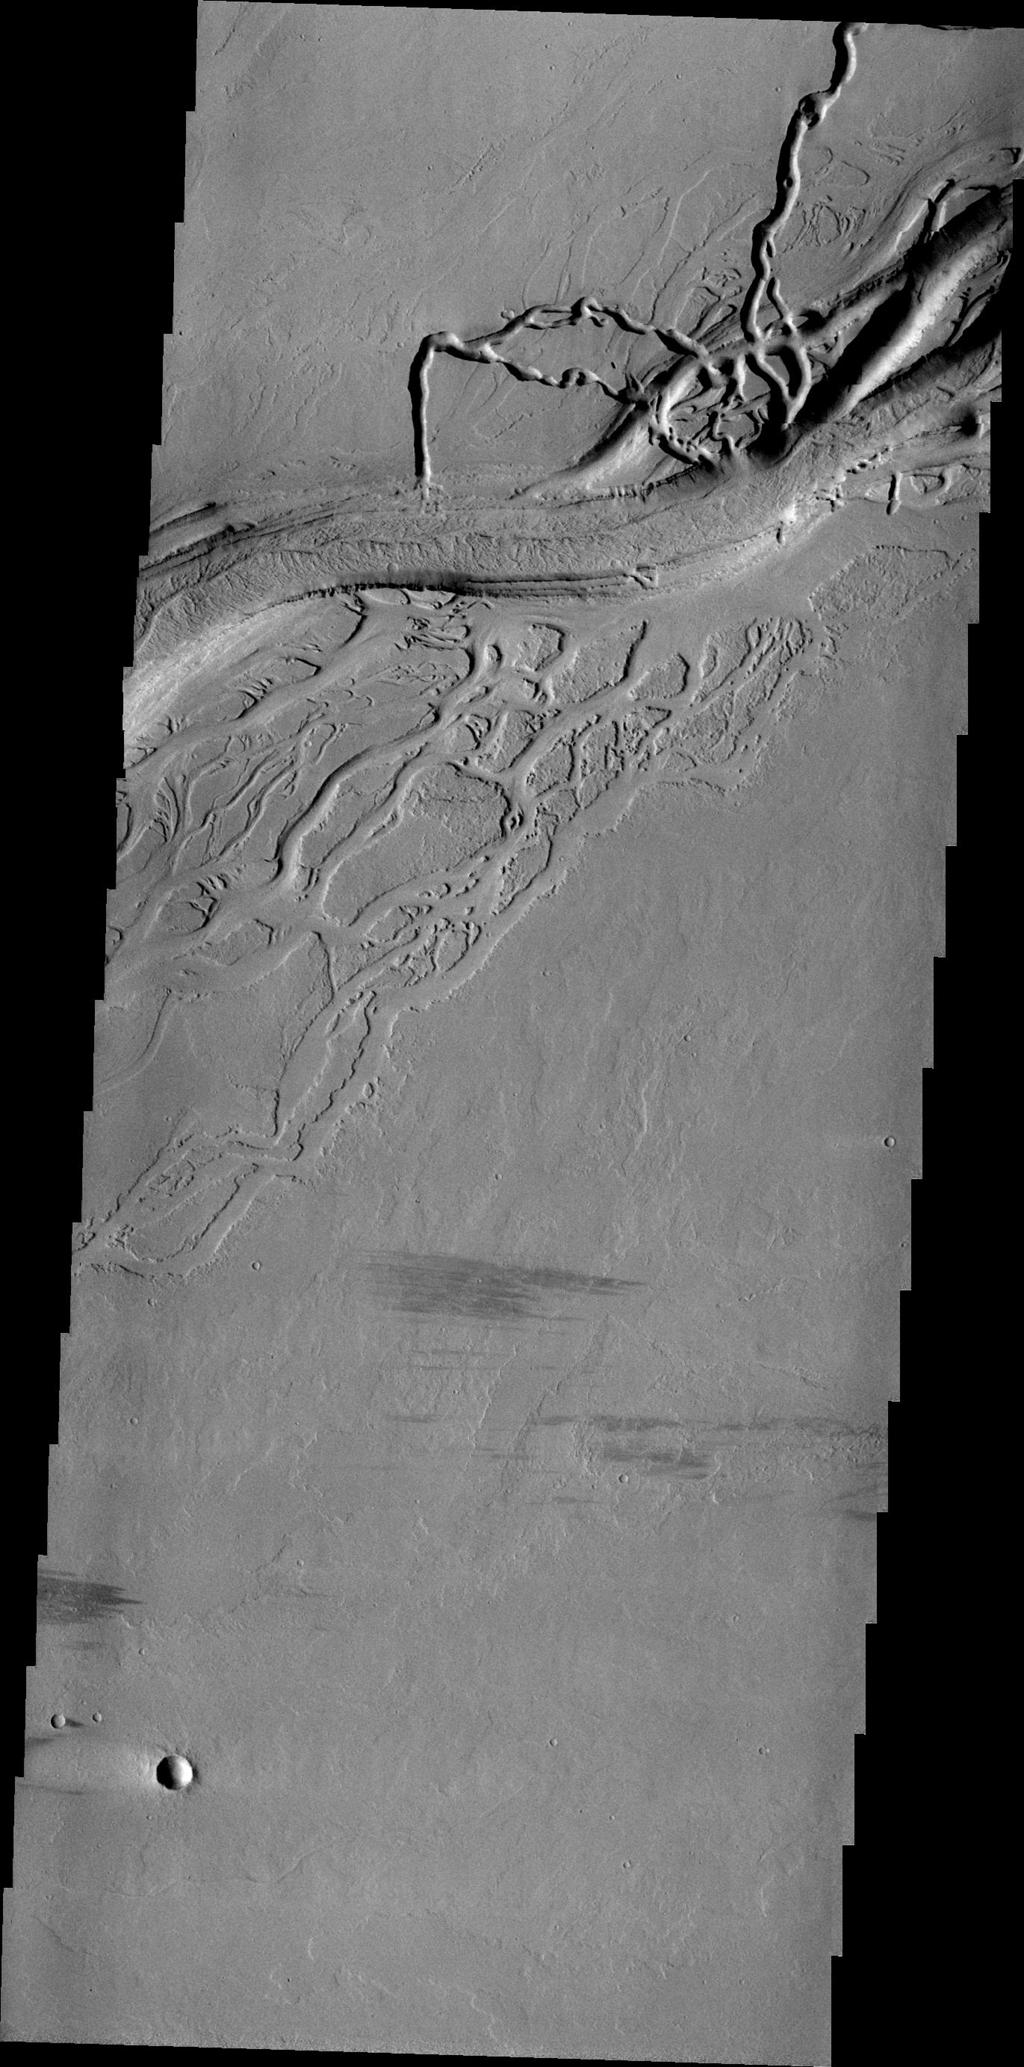 This image from NASA's 2001 Mars Odyssey shows a complex region of channels in Tharsis. Called Olympica Fossae, these channel forms were created by lava flows rather than water.